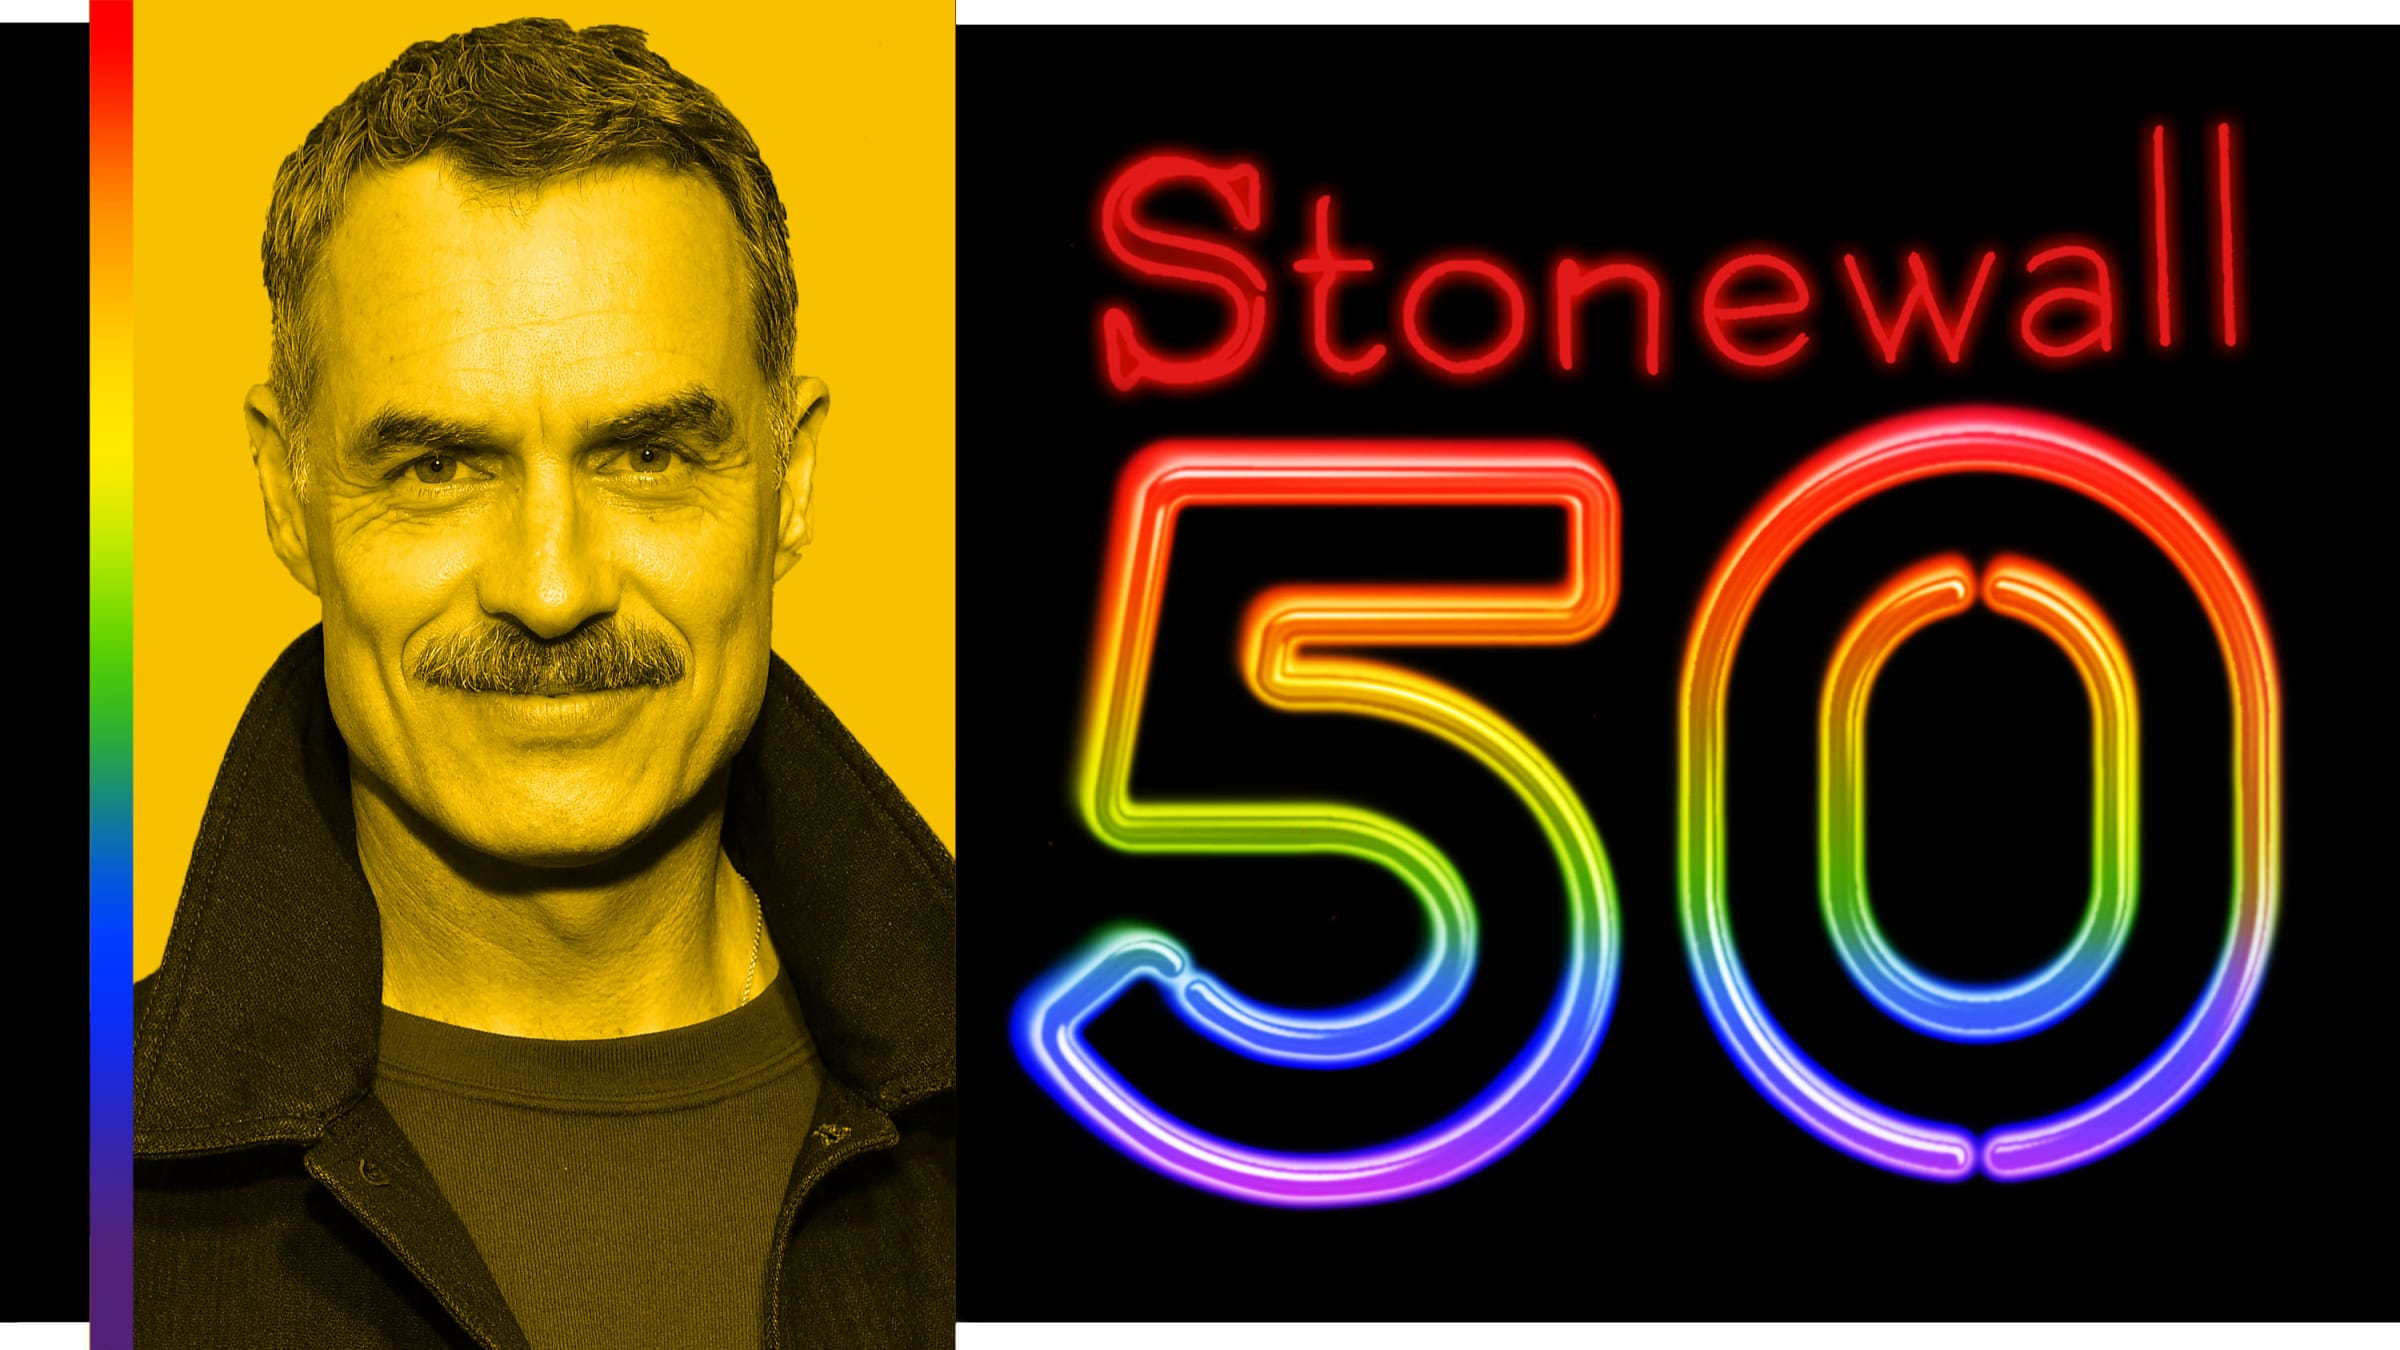 Murray Bartlett: 'The Memory of Stonewall Should Fortify Our Resolve to Continue Fighting for LGBTQ Rights'